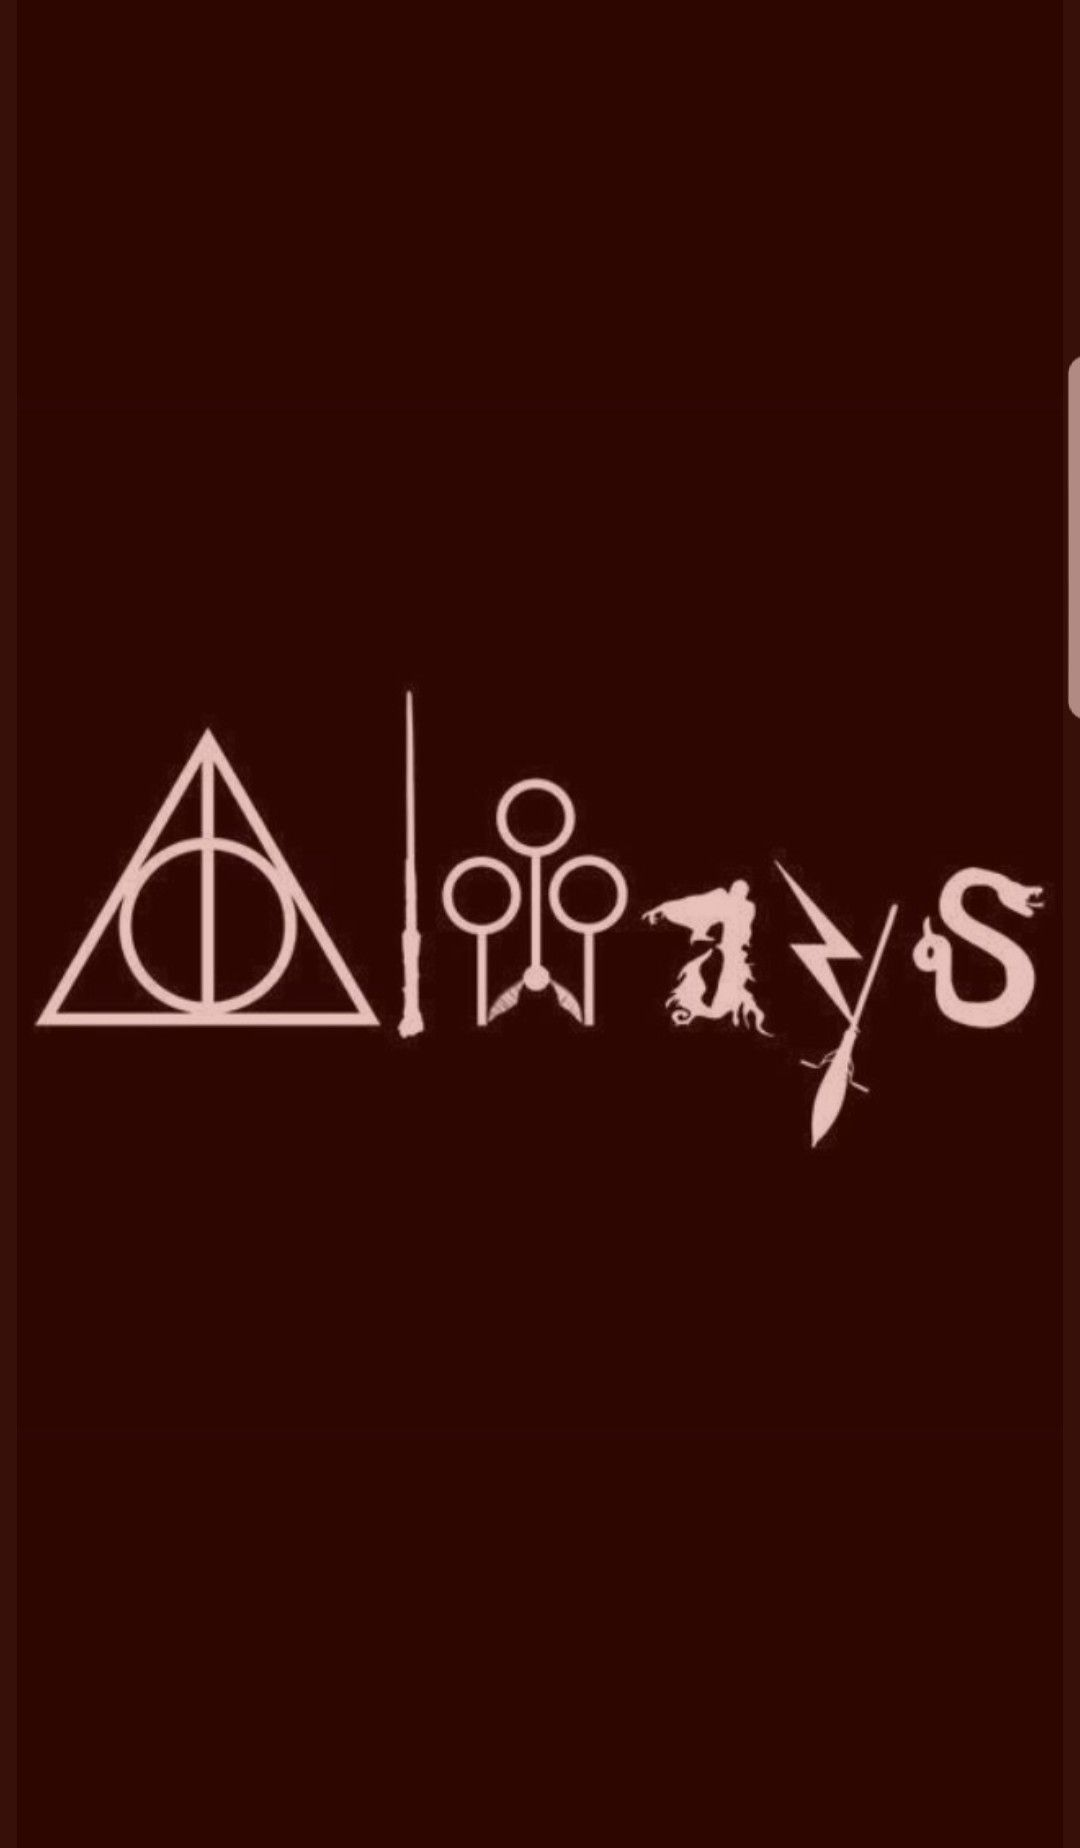 Pin by Hermione on Harry Potter backgrounds  c4ee8b086222